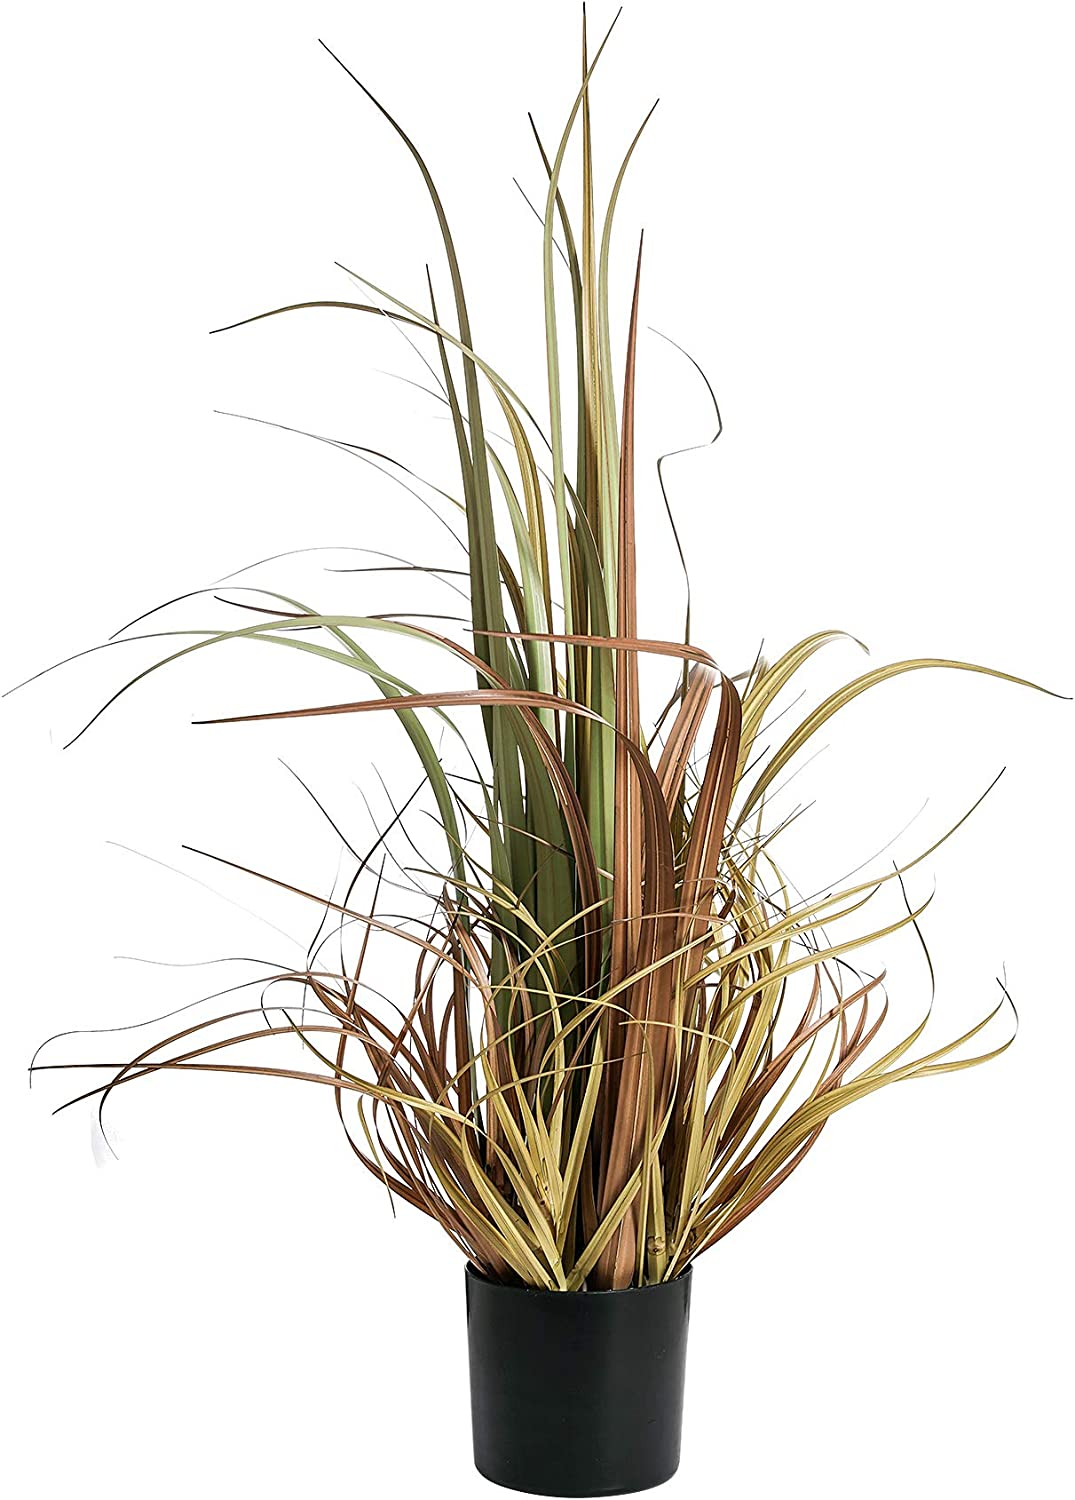 QL DESIGN 32 inches Artificial Potted Plant, Curve Artificial Grass Plants for Office/Home Decor